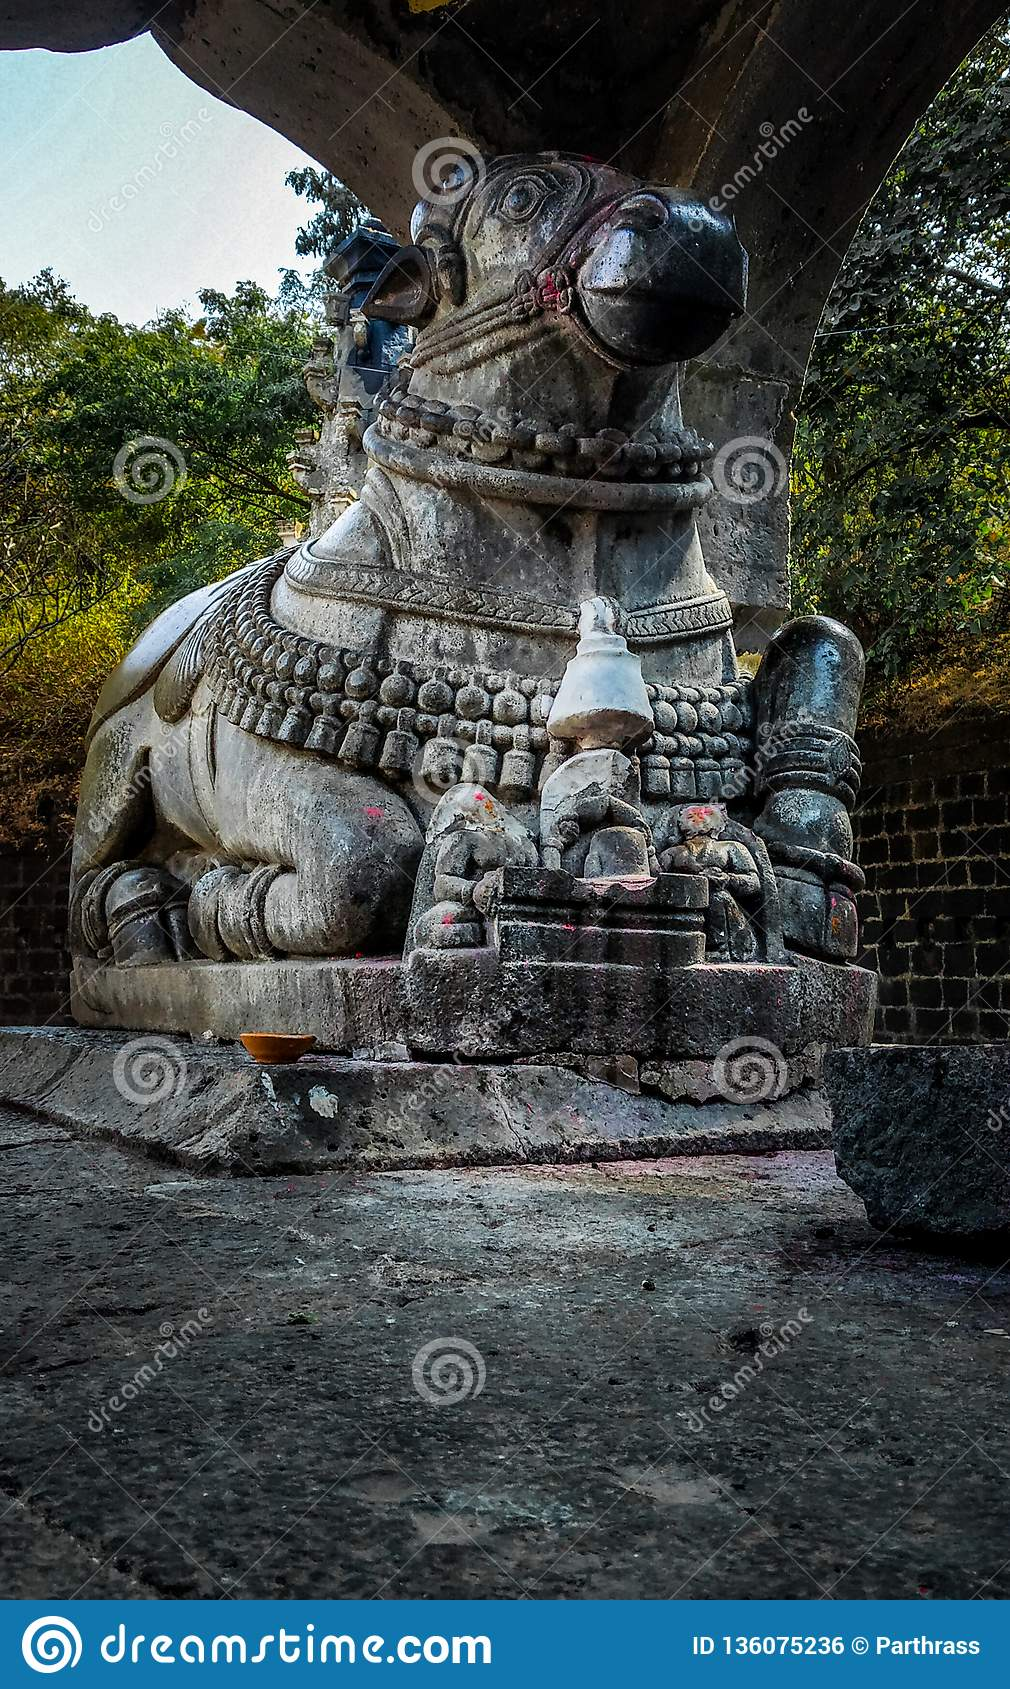 stone statue of nandi in an old ancient temple